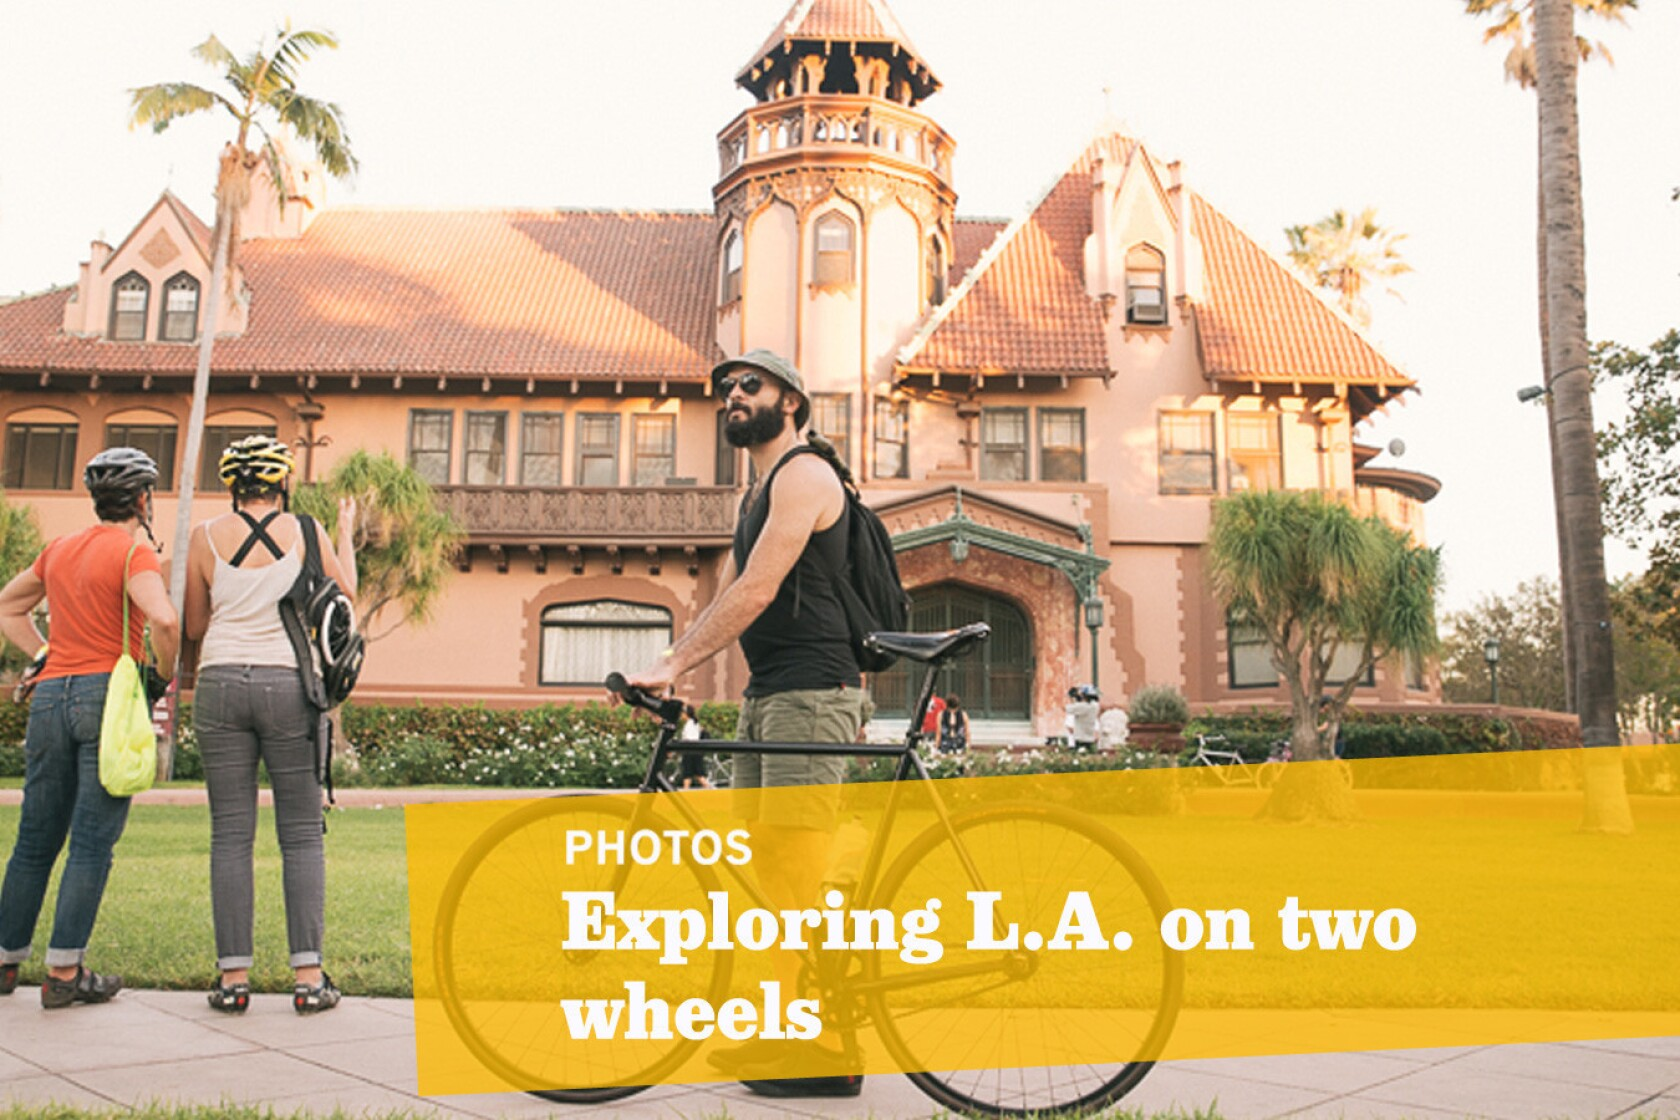 Los Angeles Explorers Club burns calories while seeking out the city's sexy, seedy side